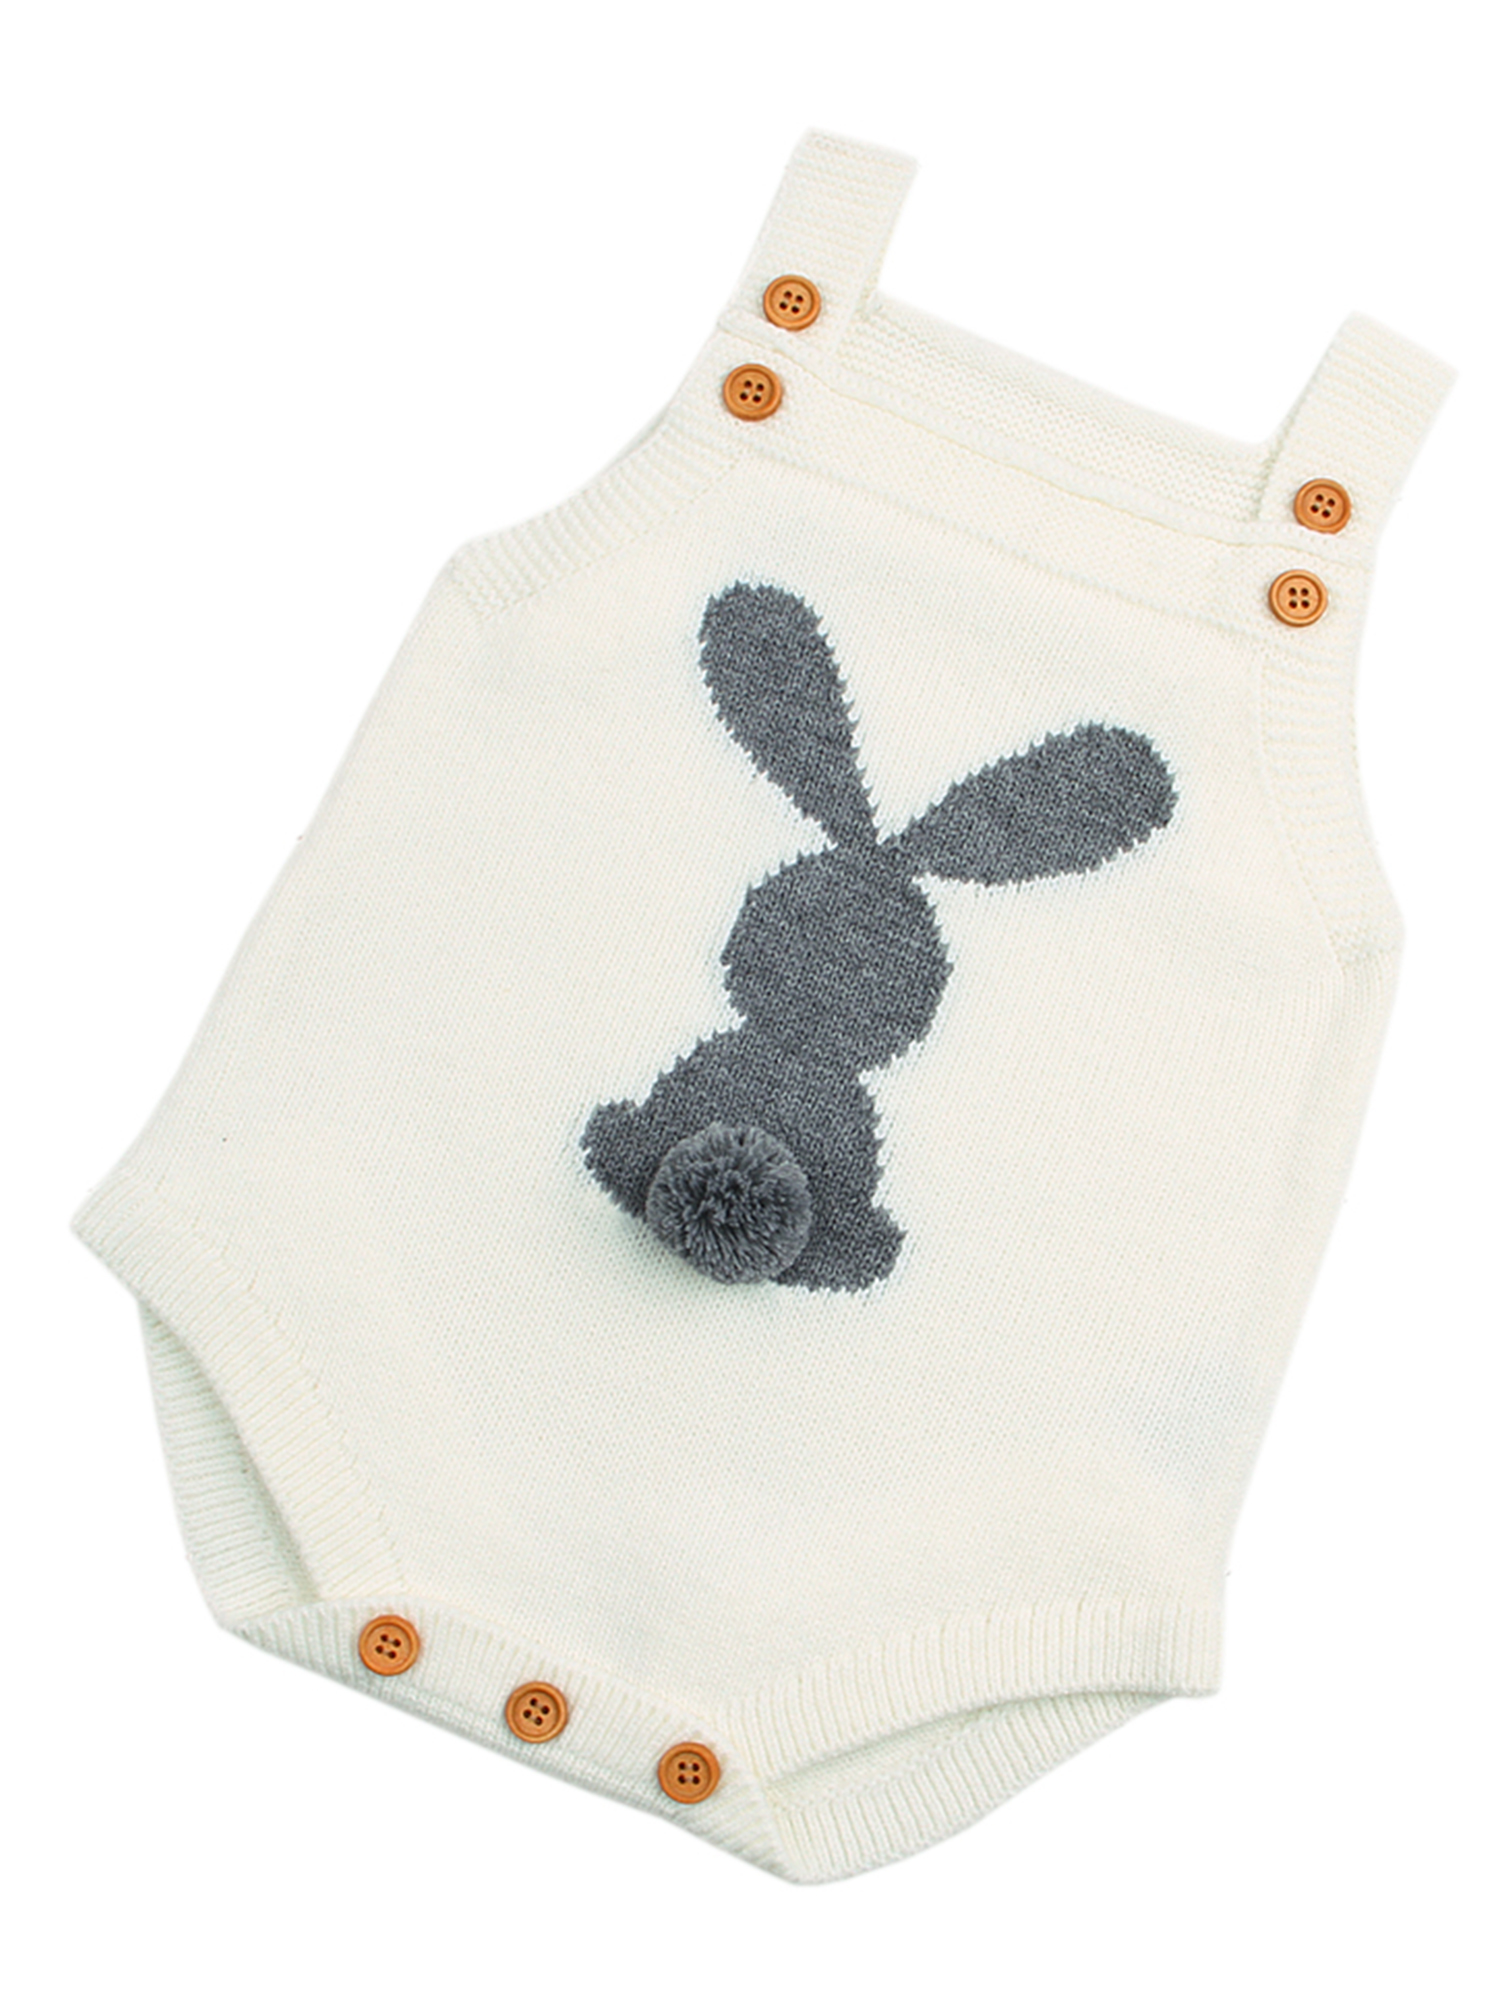 Baby Knit Rompers Clothes Toddler Jumpsuit Easter Bunny Sleeveless Outfit